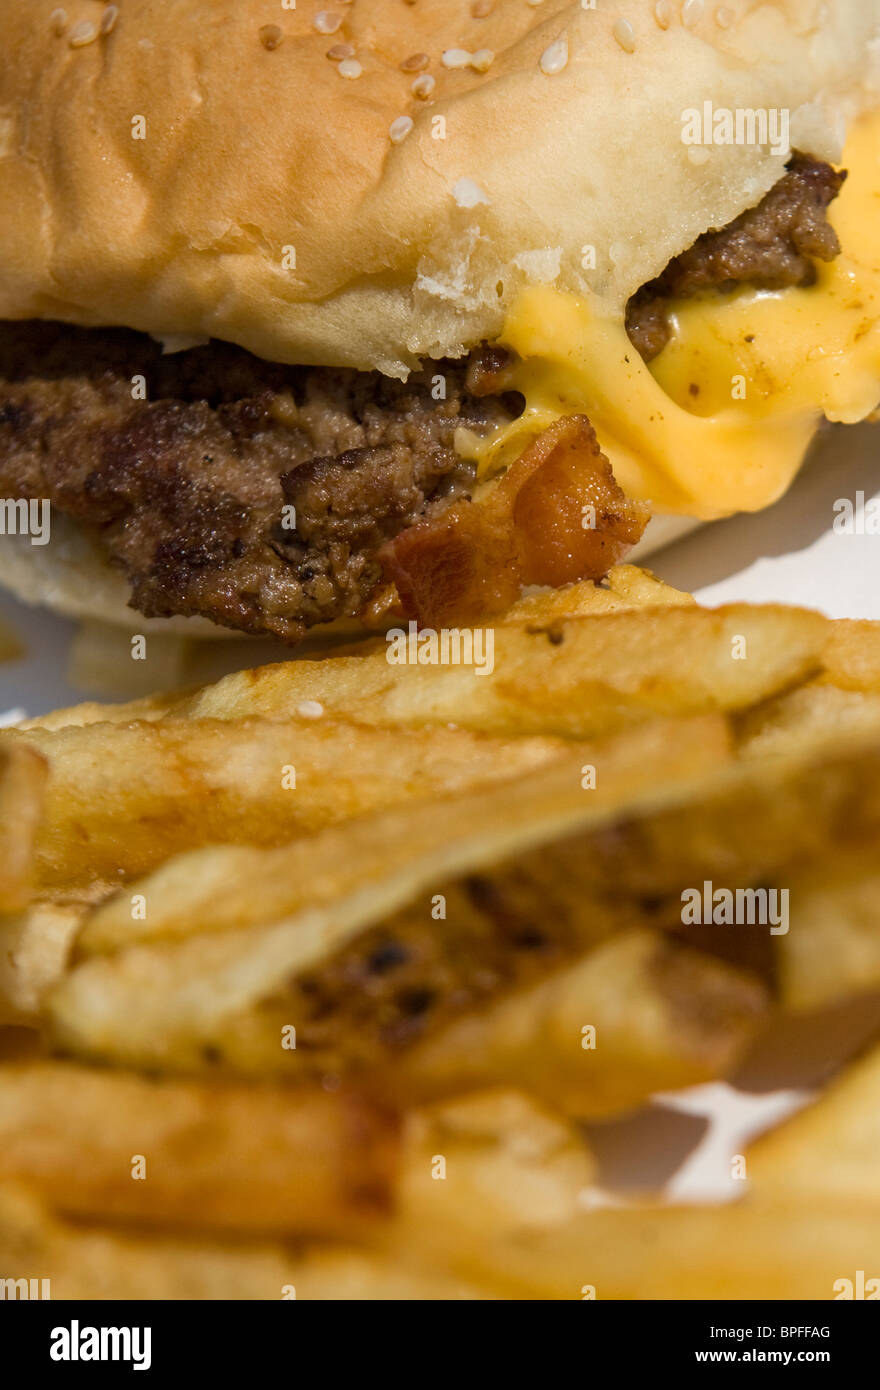 Un cinq gars bacon cheeseburger et frites. Photo Stock